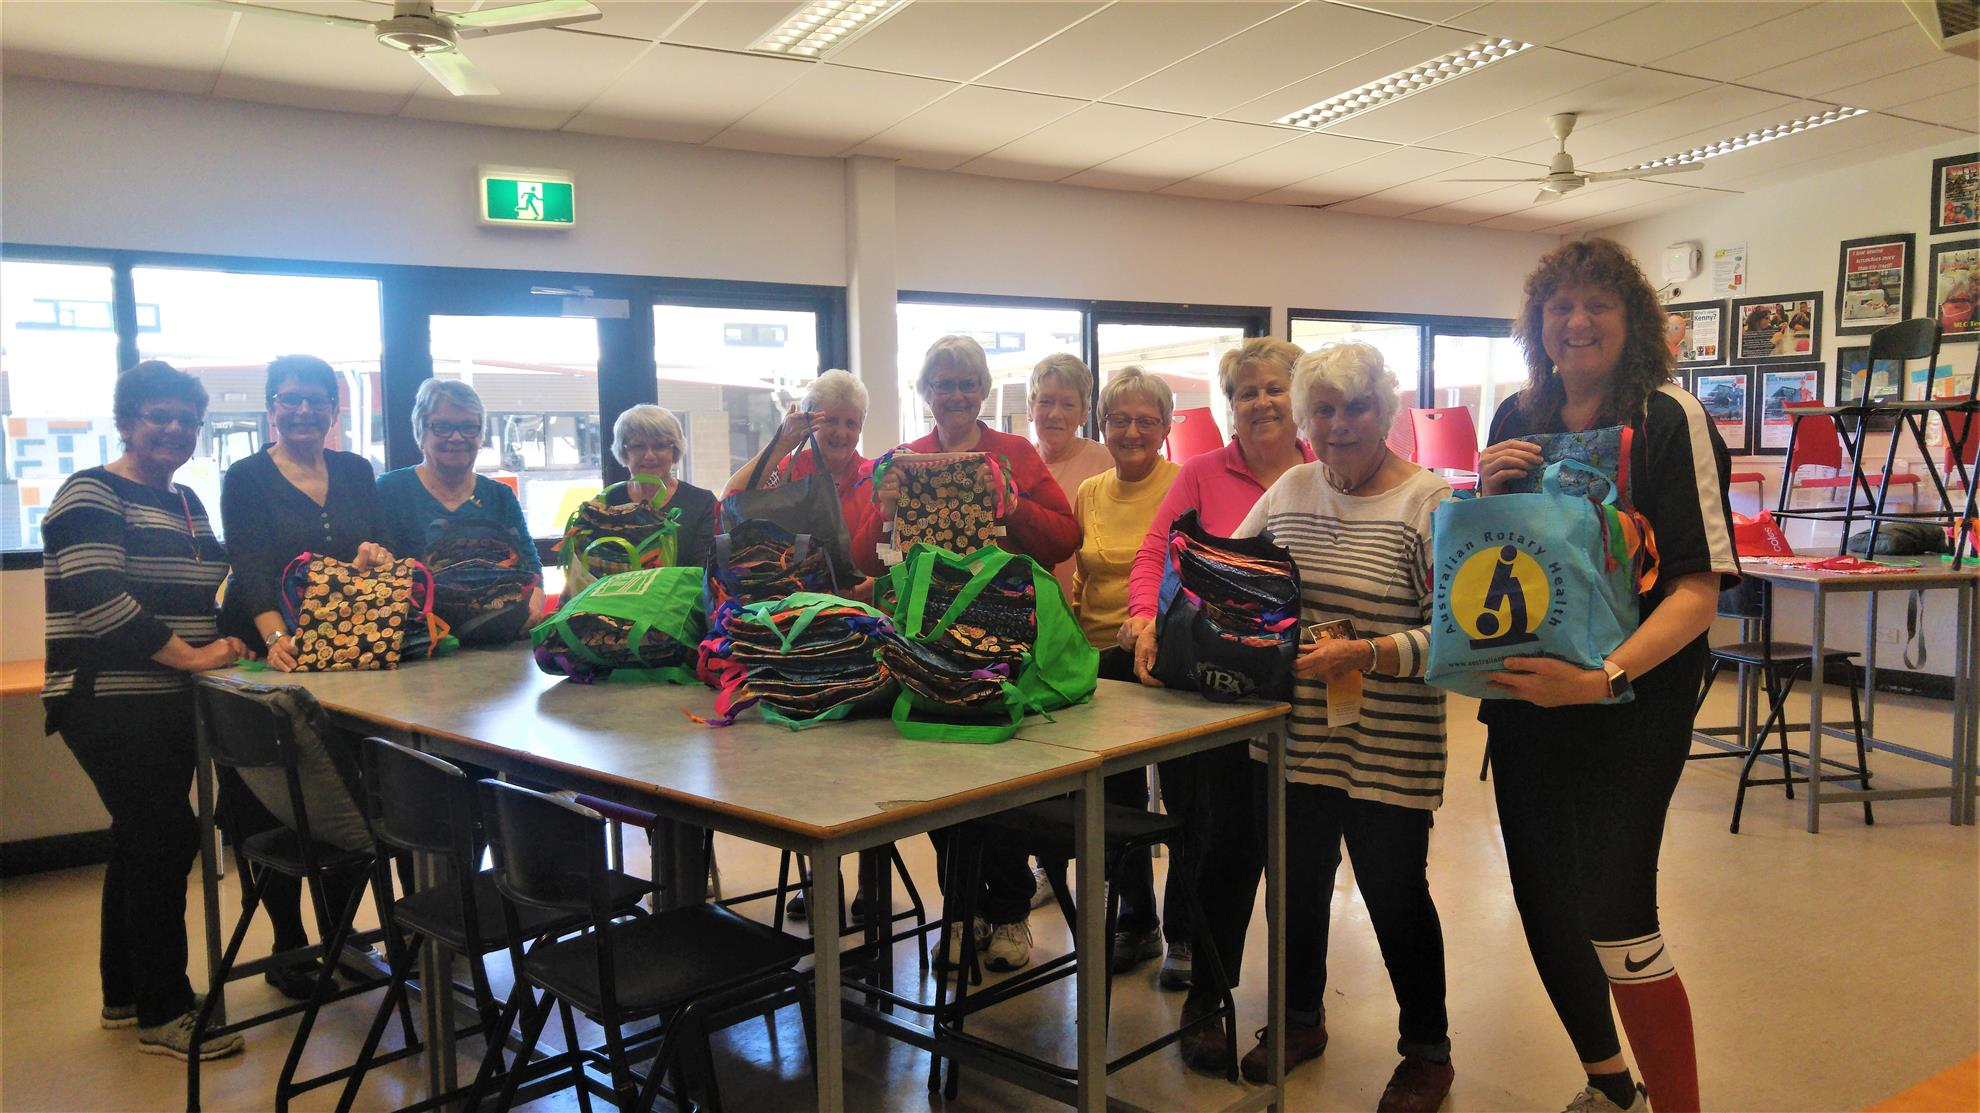 Stories Rotary Club Of Maryborough If You Run Out Room On The Starter Relay Quotbquot Post Install A Power Dozen Ladies From Zonta And Red Cross Worked With Margaret Cunningham To Produce 100 Kits For Days Girls Program Last Saturday